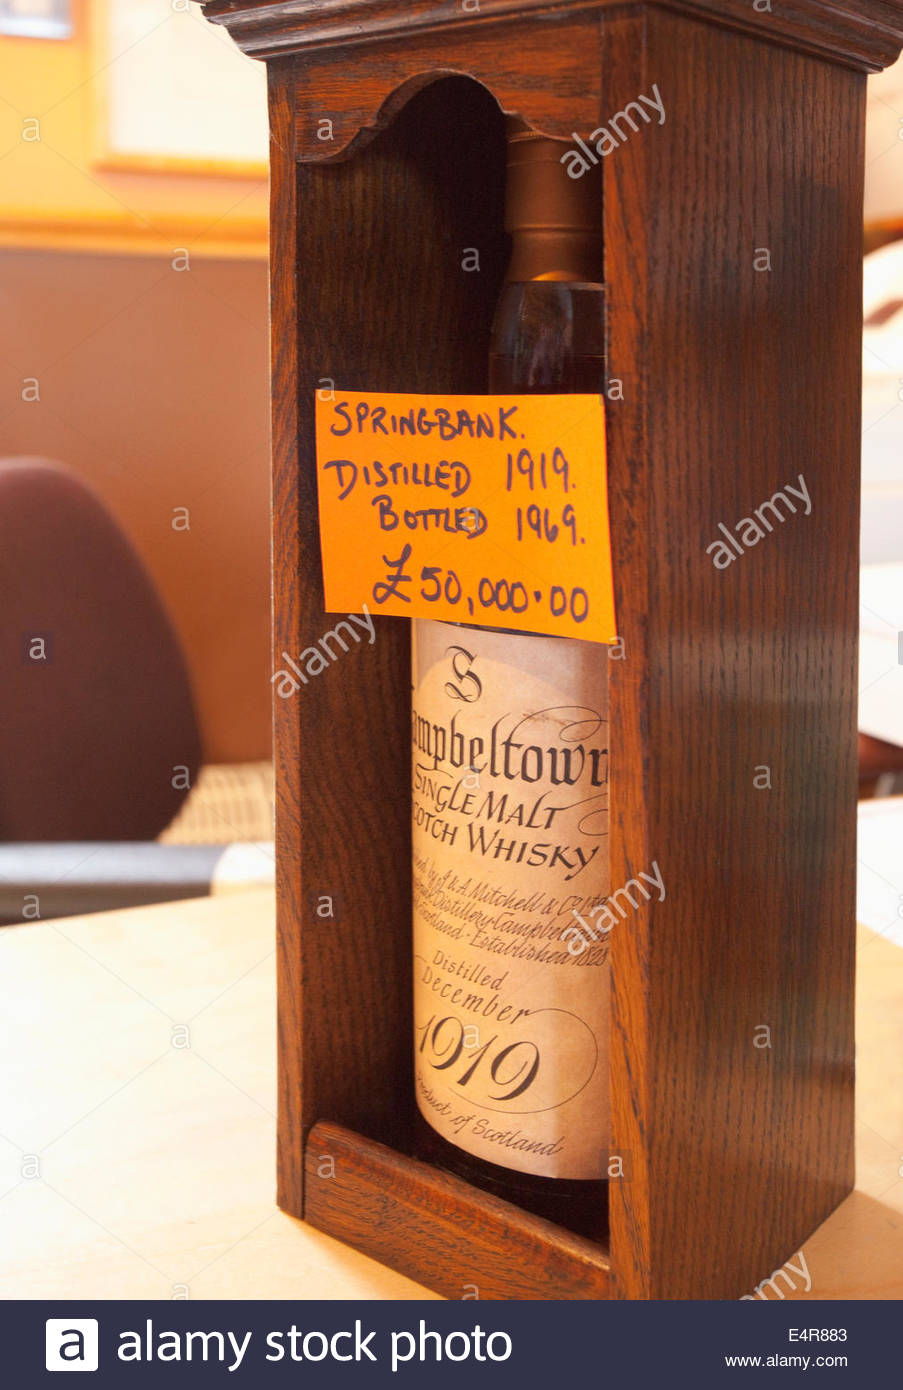 A bottle of 1919 single malt whisky valued at £50,000 at the shop at the Springbank Distillery, Campbeltown, - Stock Image